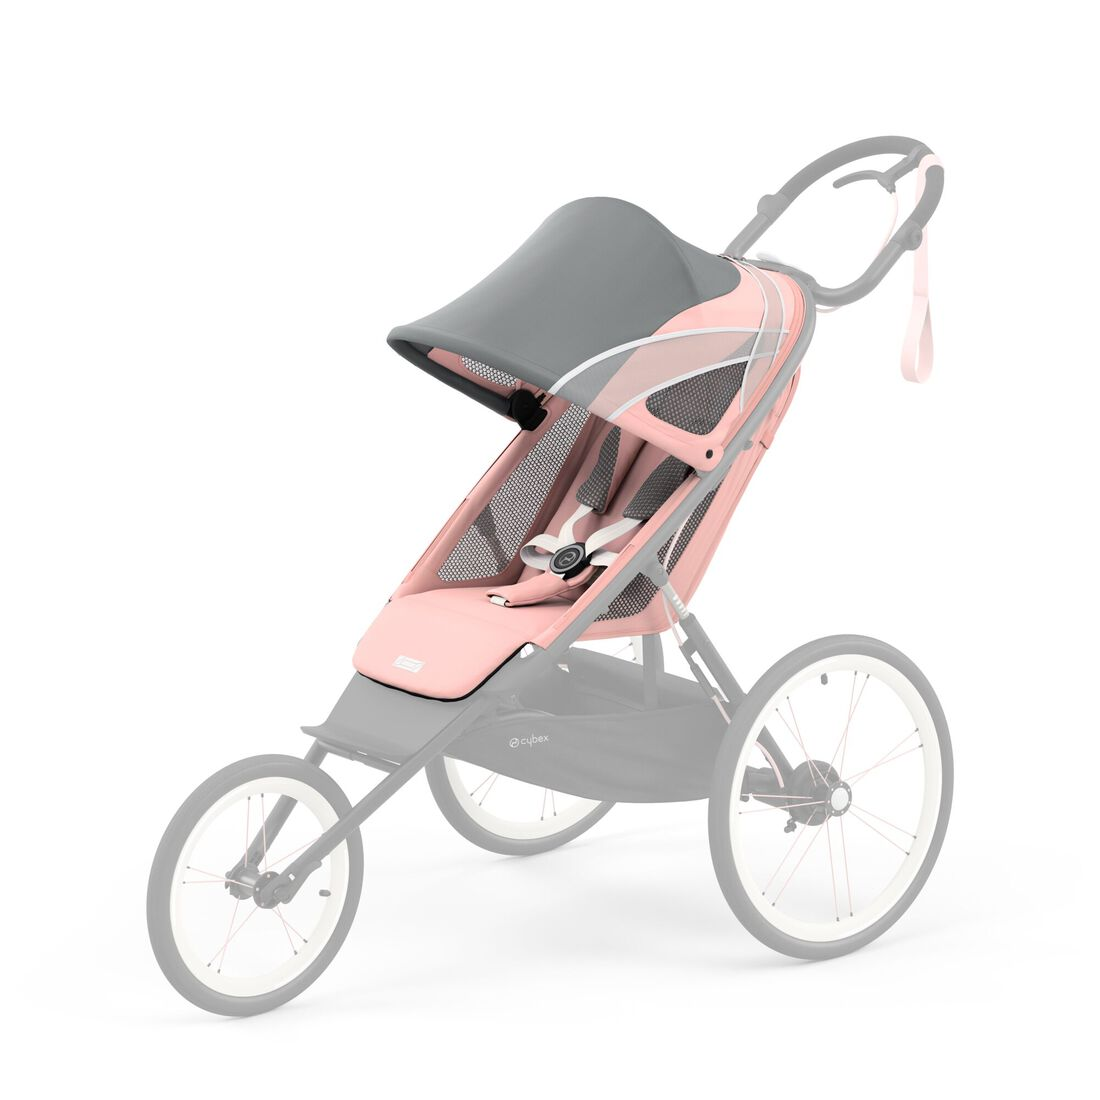 CYBEX Avi Seat Pack - Silver Pink in Silver Pink large image number 1